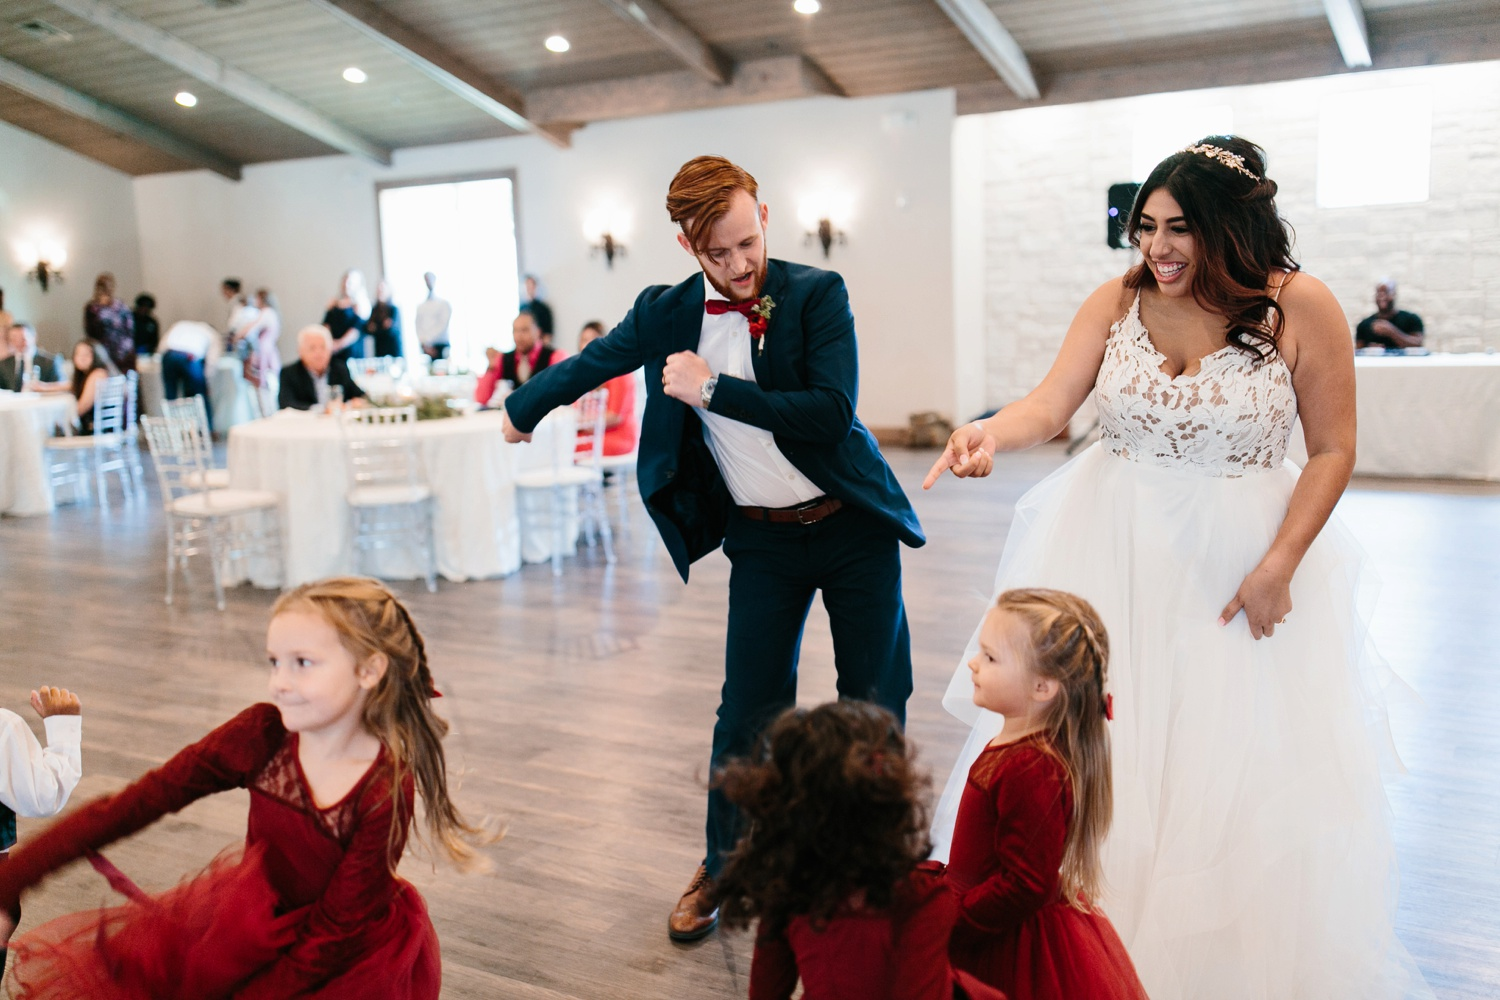 Grant + Lysette | a vibrant, deep burgundy and navy, and mixed metals wedding at Hidden Pines Chapel by North Texas Wedding Photographer Rachel Meagan Photography 159